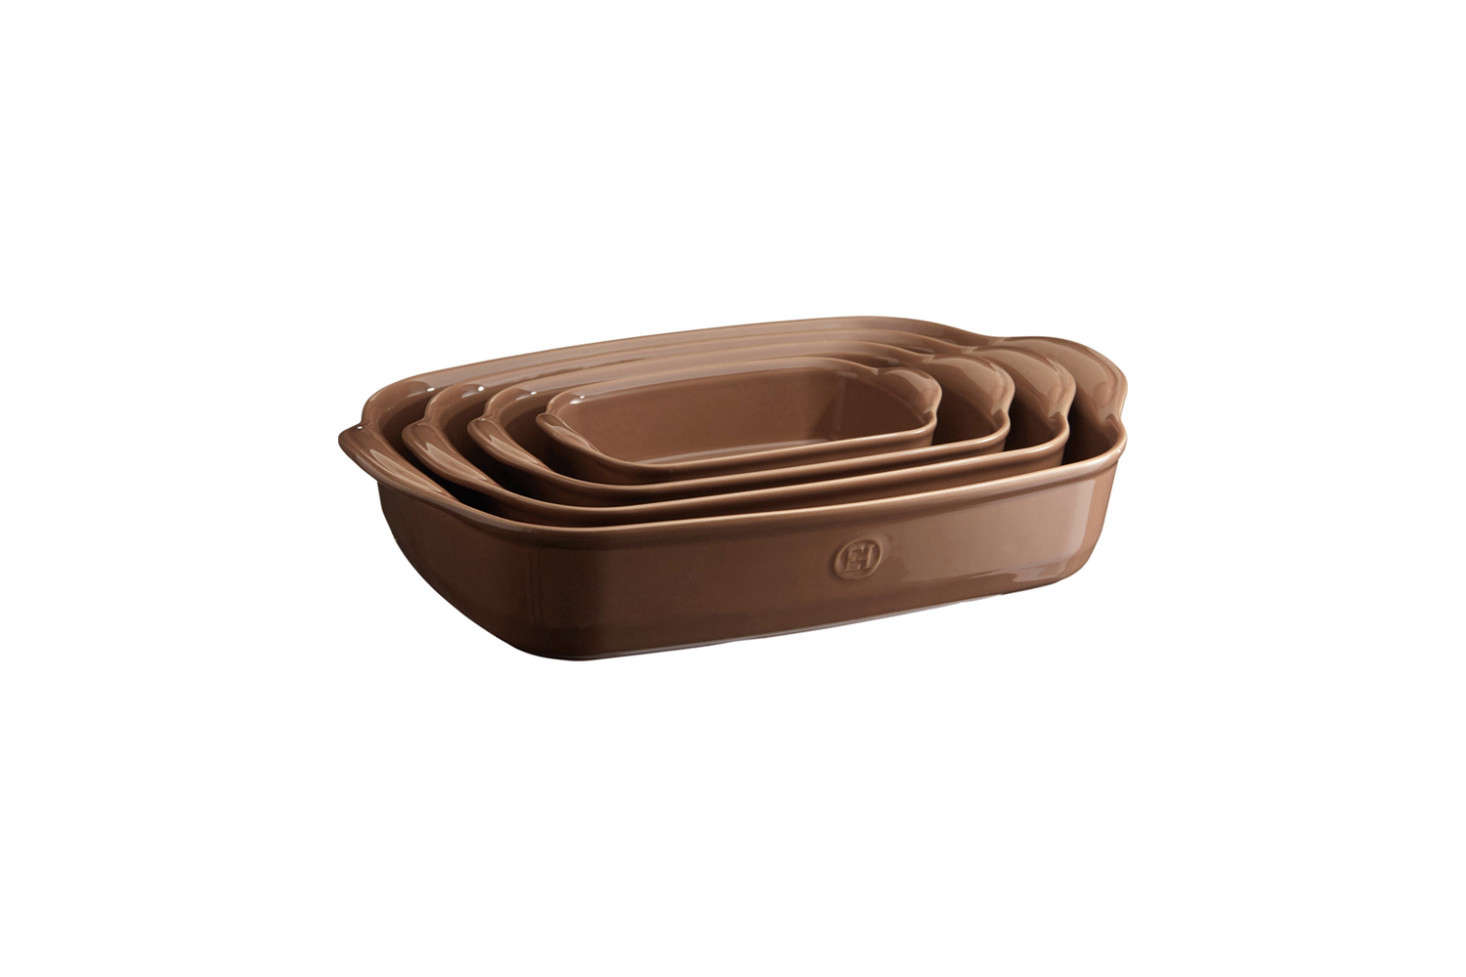 The Emile Henry Ultime Rectangular Baking Dish is one of many sizes and colors (shown in Oak); prices start at $35 for the smallest rectangle to $80 for the largest at Emile Henry.